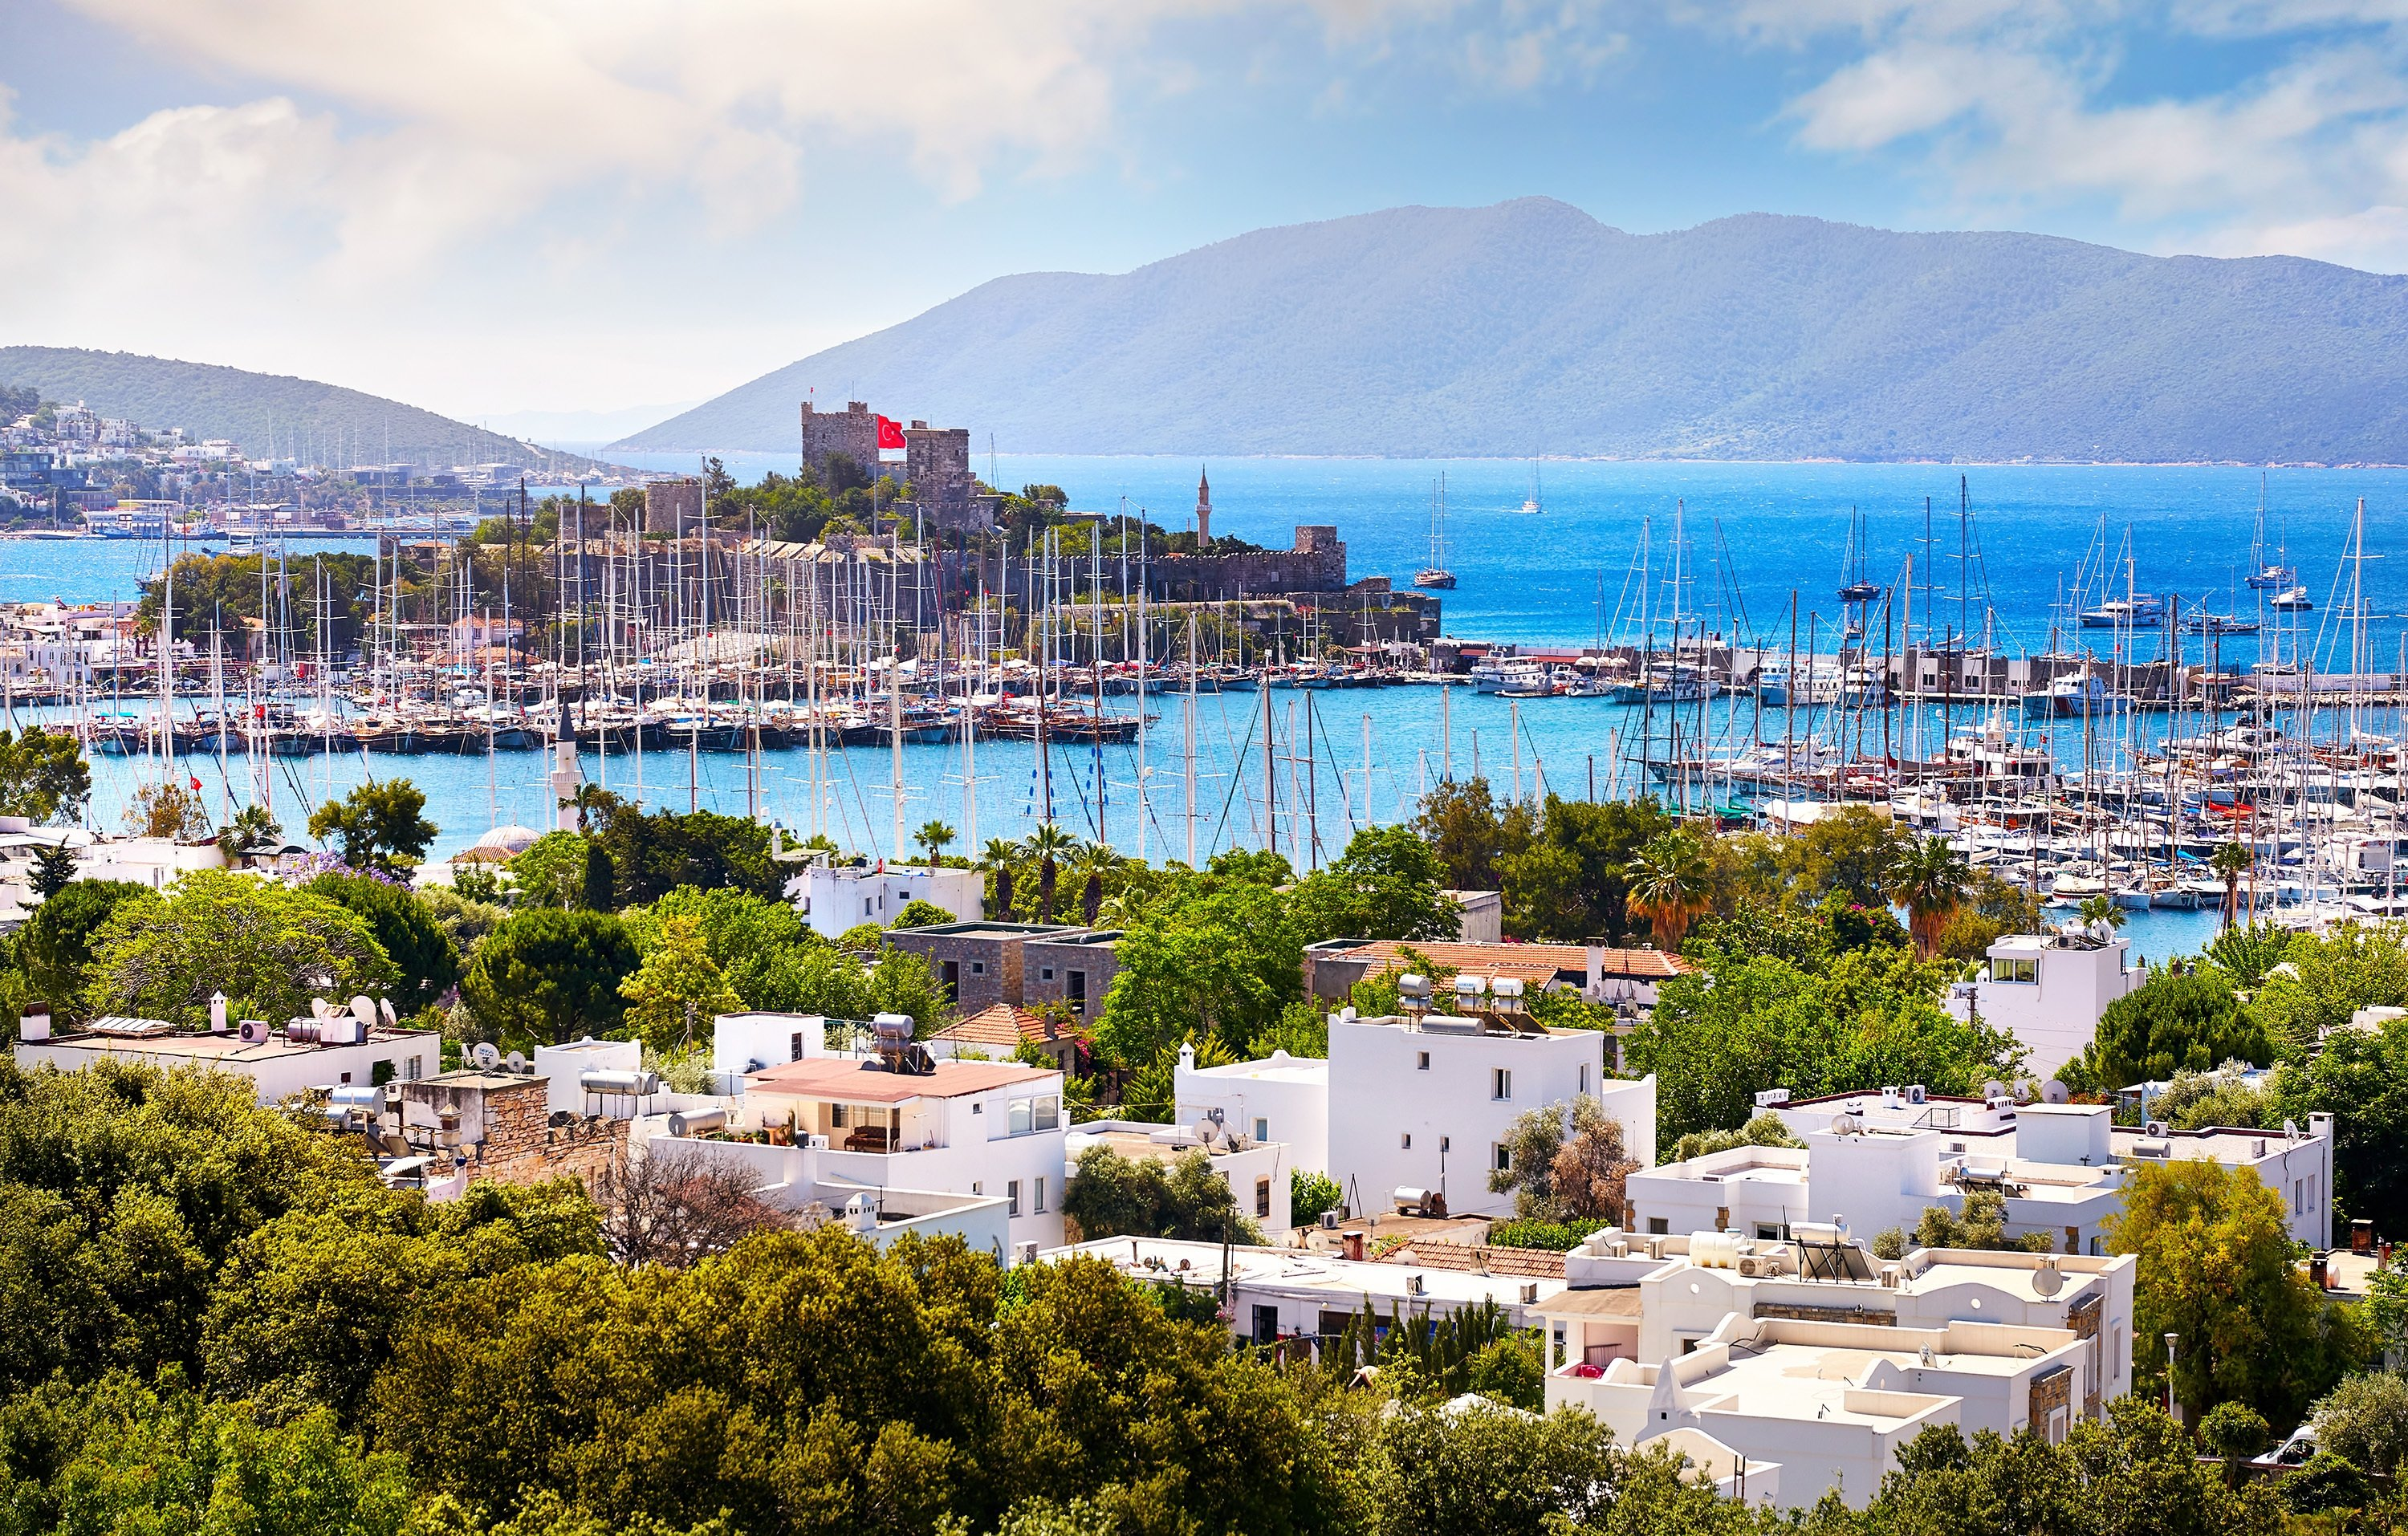 Many expats make their home in Bodrum after retirement. (Shutterstock Photo)